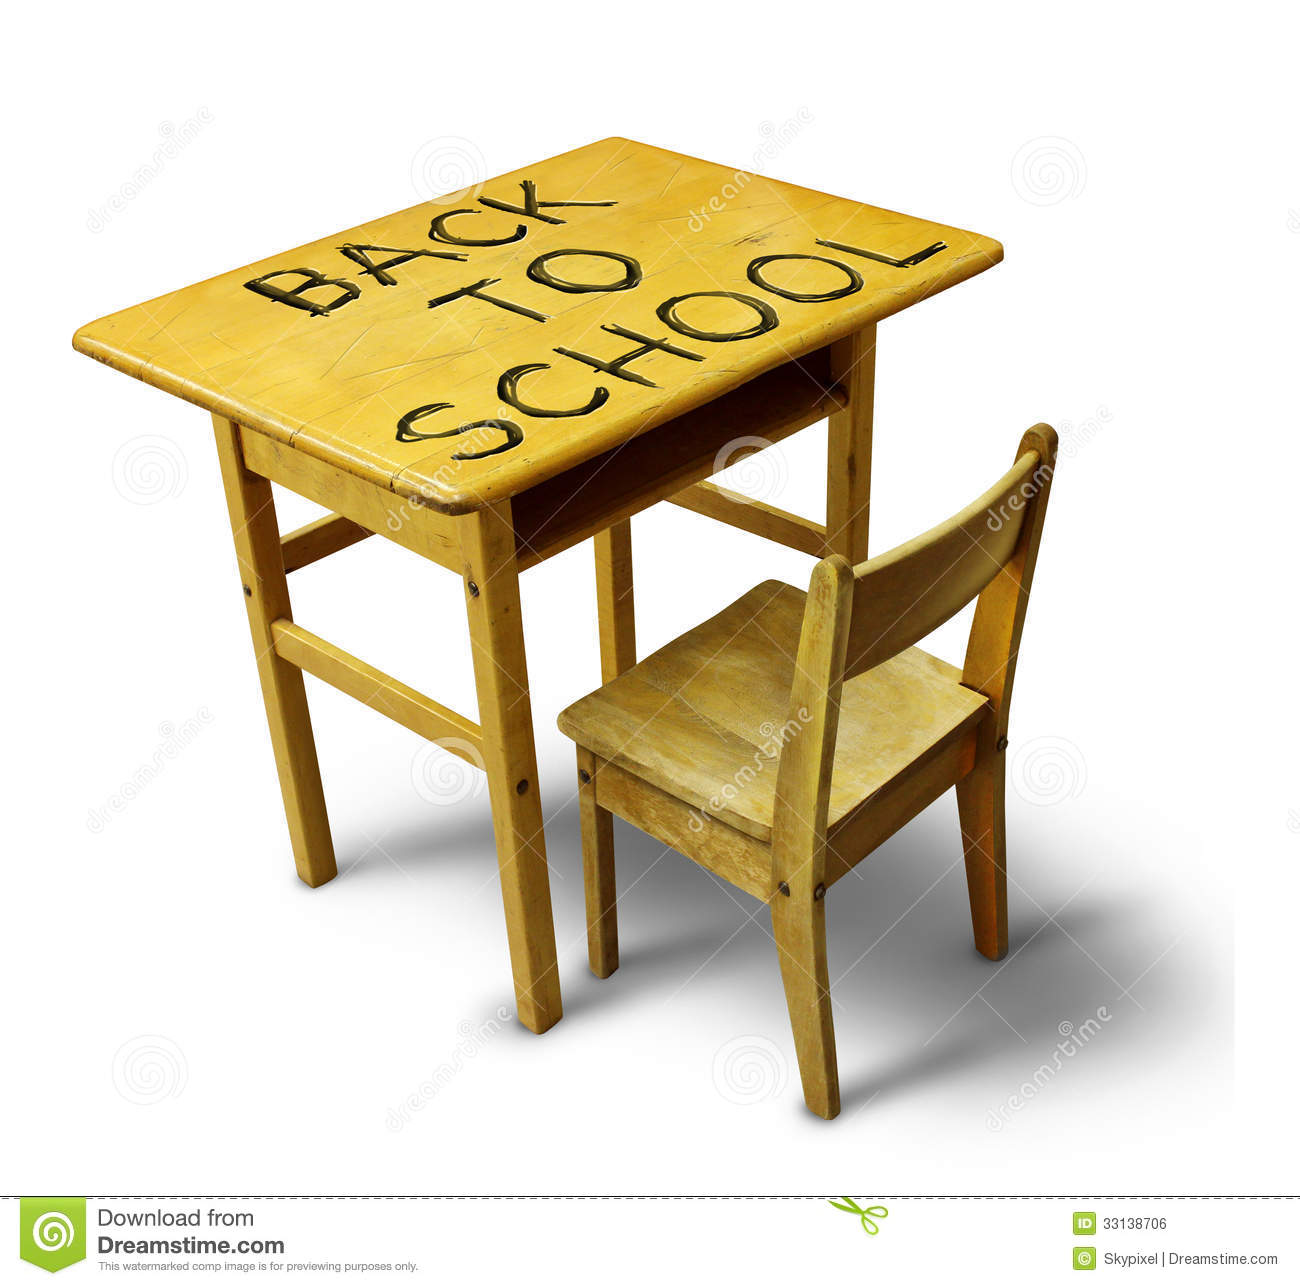 Permalink to woodworking plans for child's table and chairs